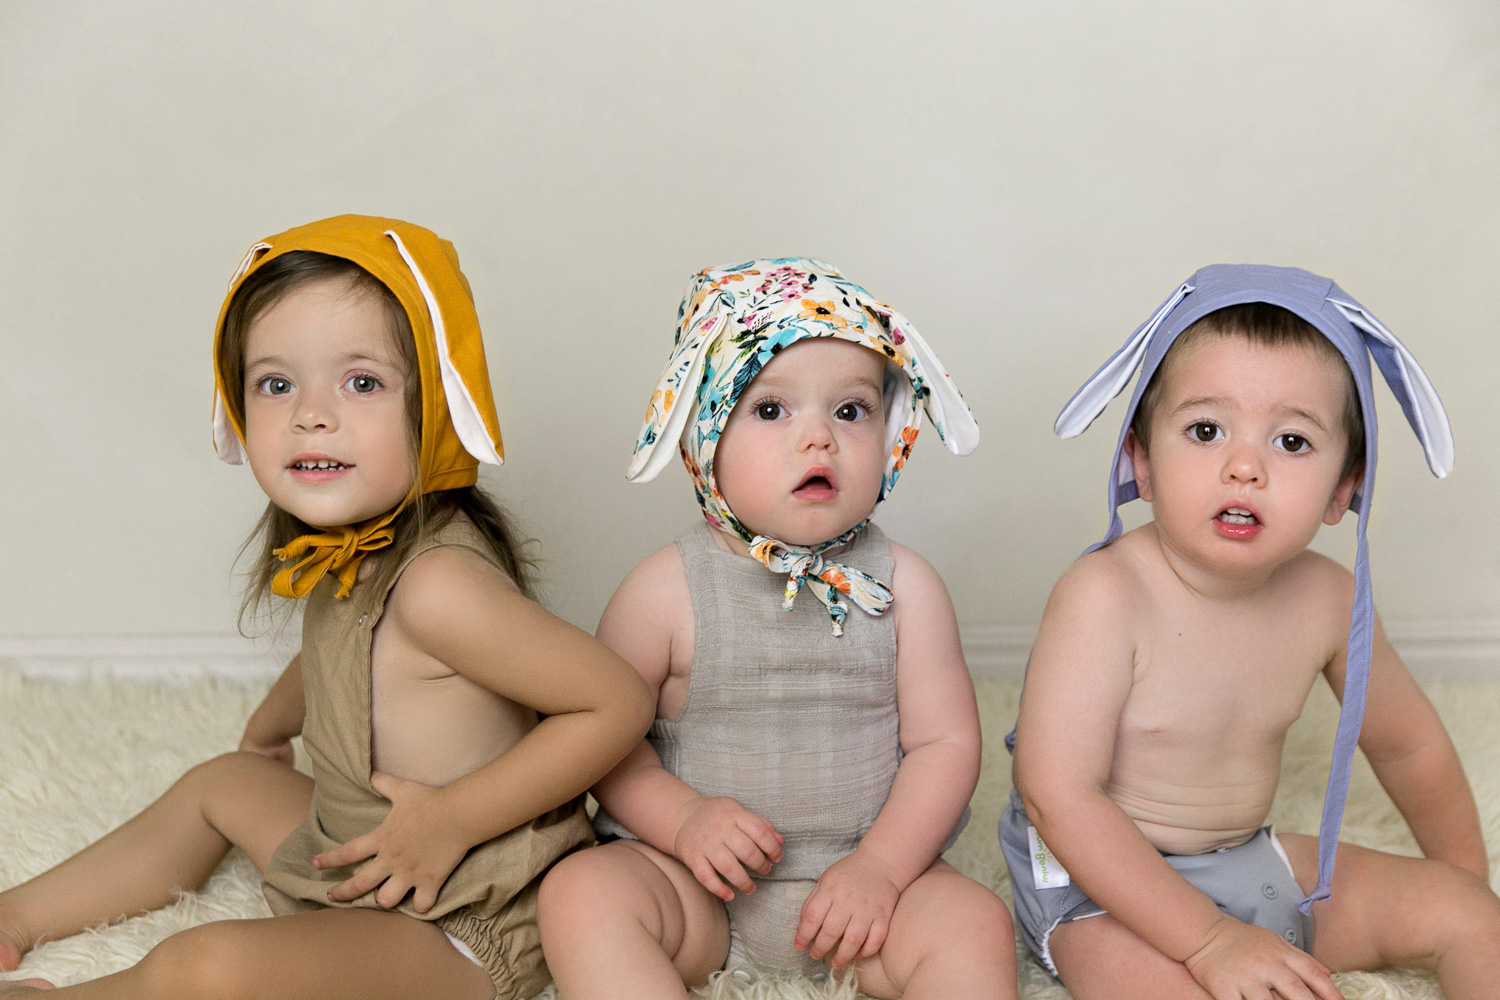 easter styled photo shoot bonnet bunny gold coast commercial photography topknot girl children babies